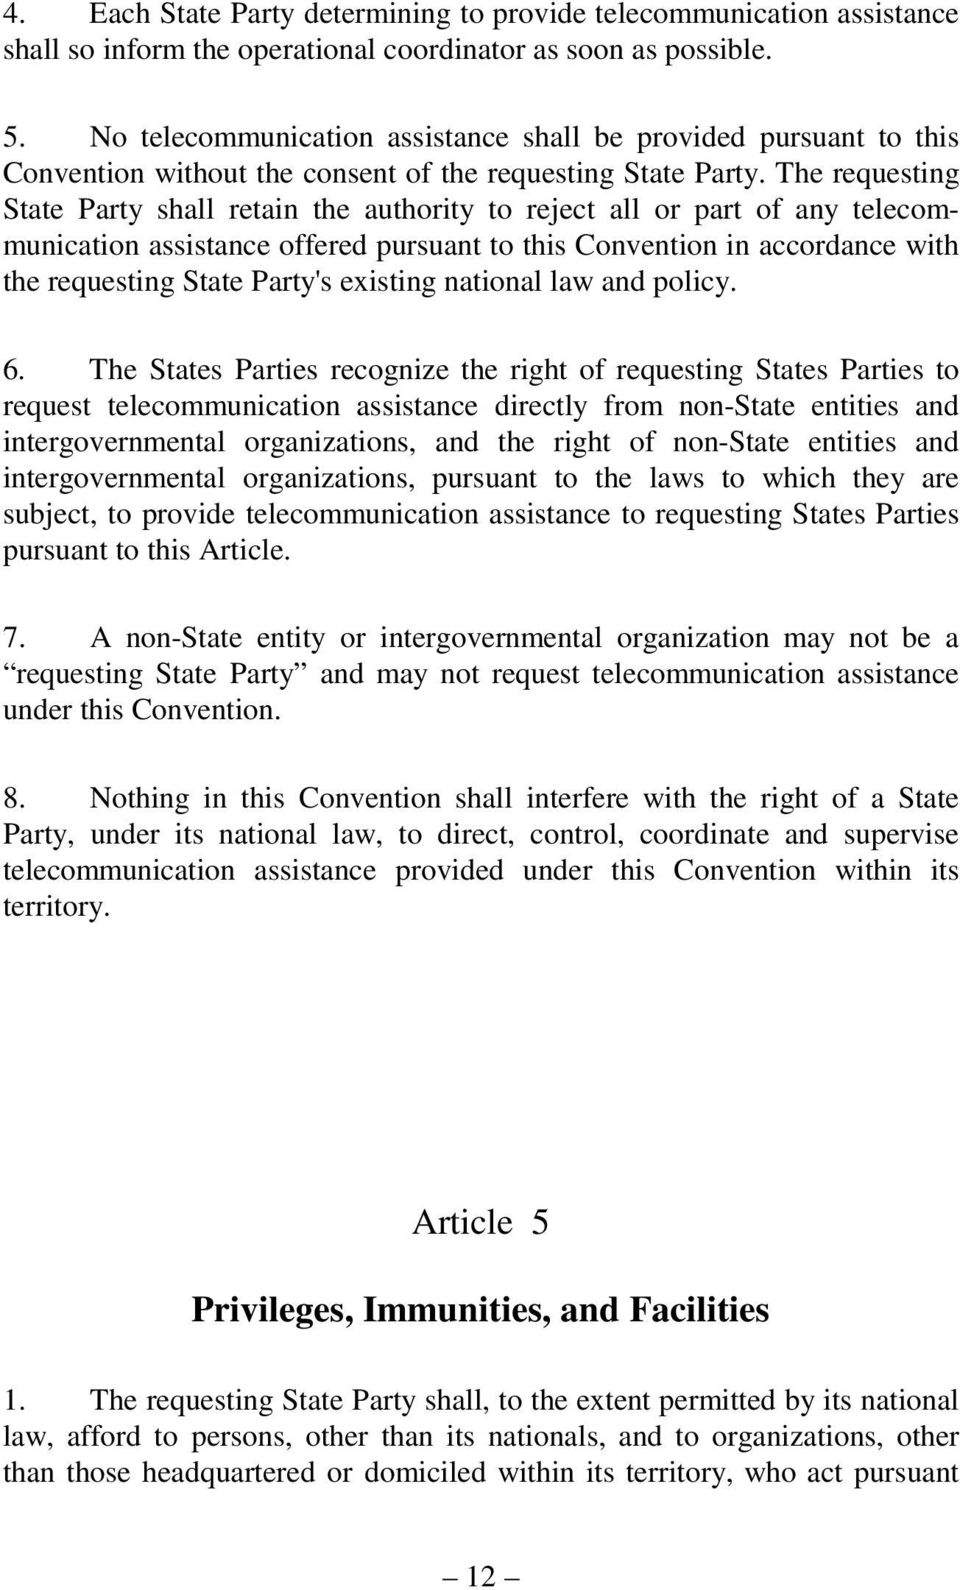 The requesting State Party shall retain the authority to reject all or part of any telecommunication assistance offered pursuant to this Convention in accordance with the requesting State Party's